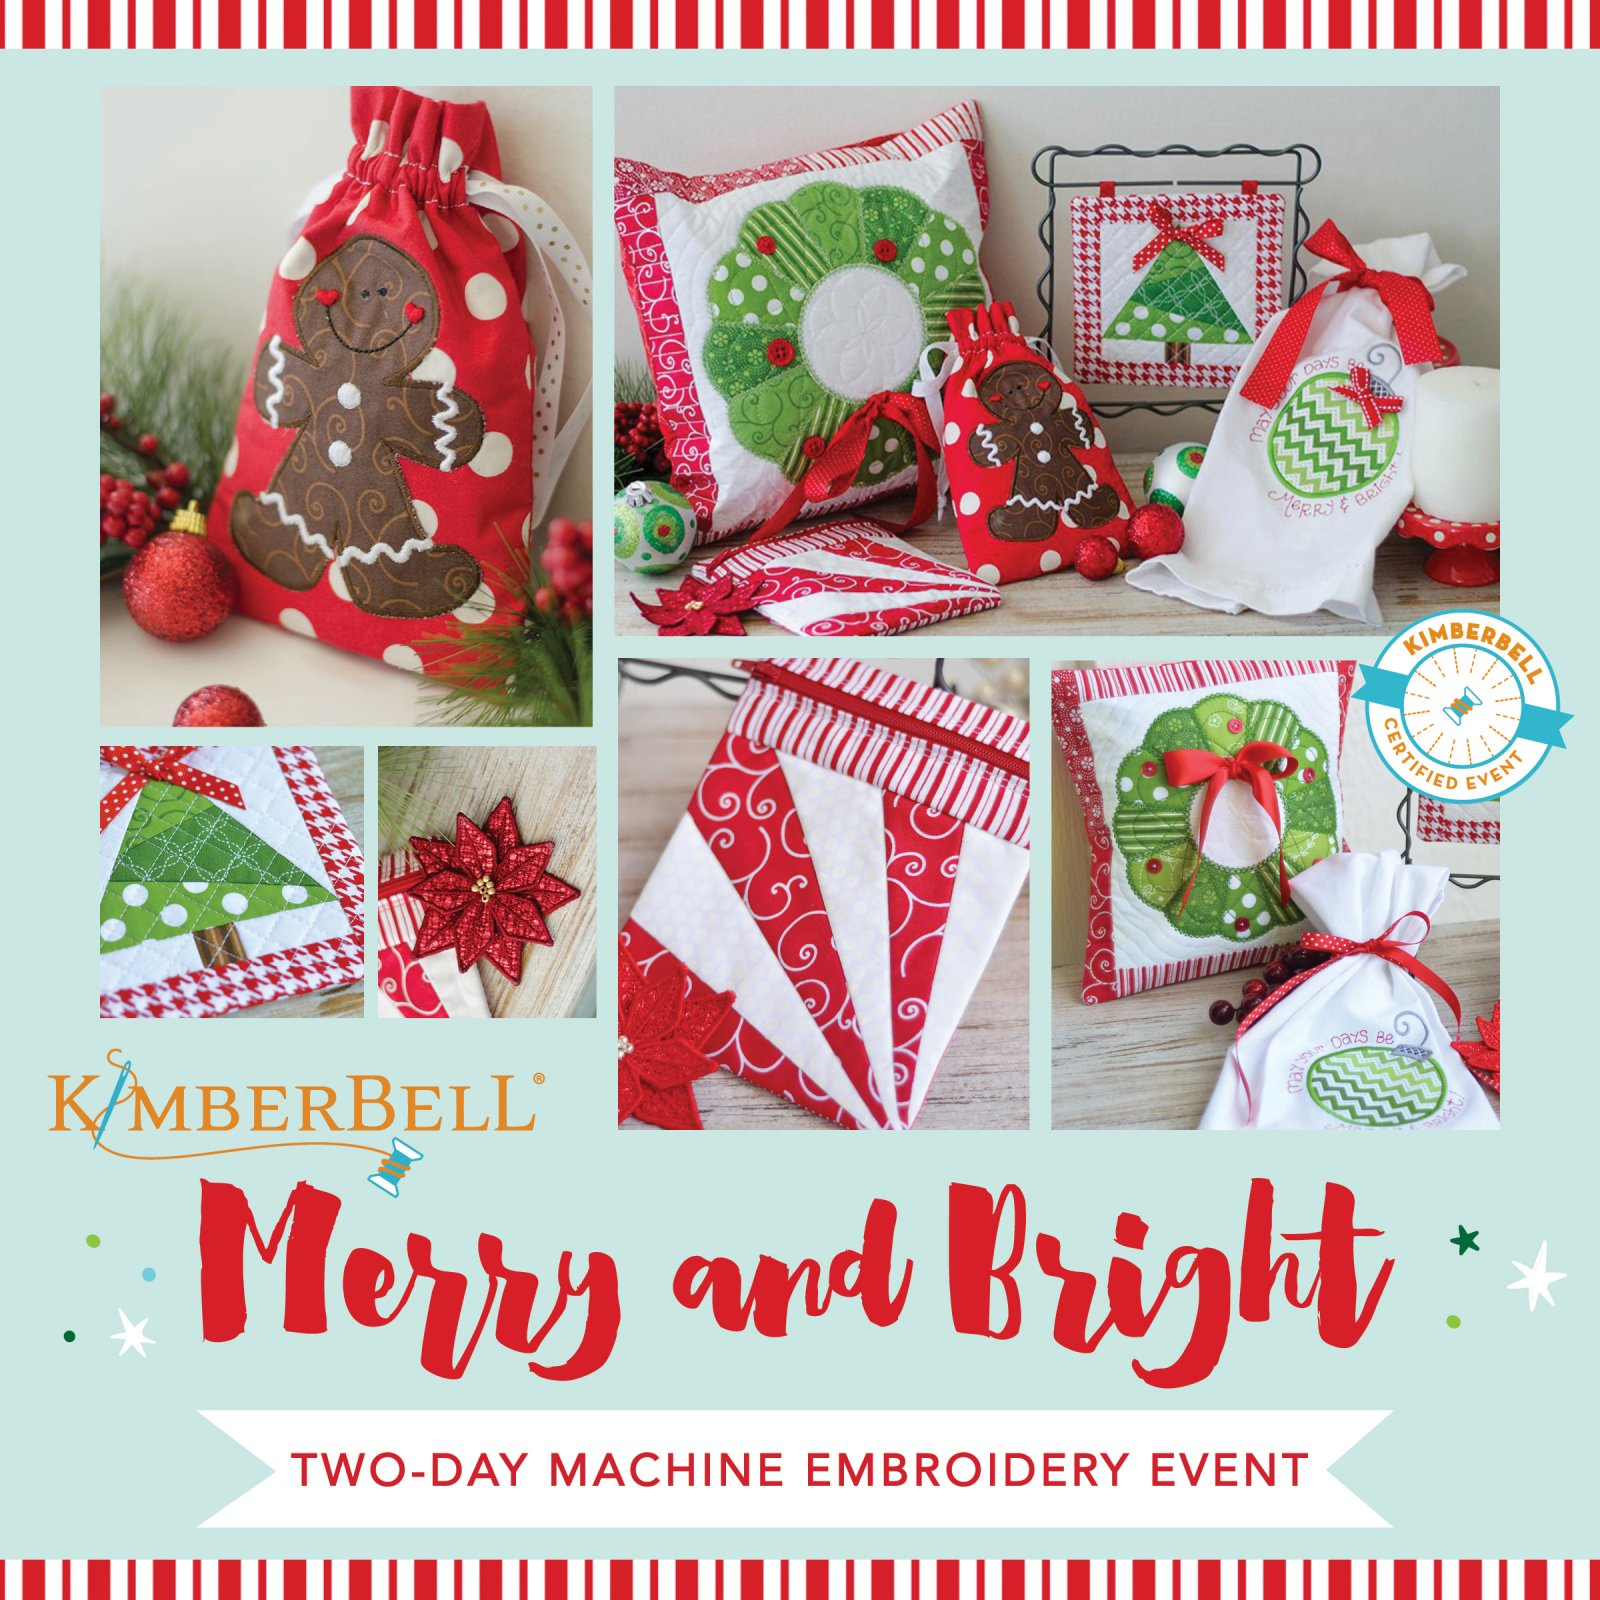 Merry and Bright Virtual Kimberbell Event